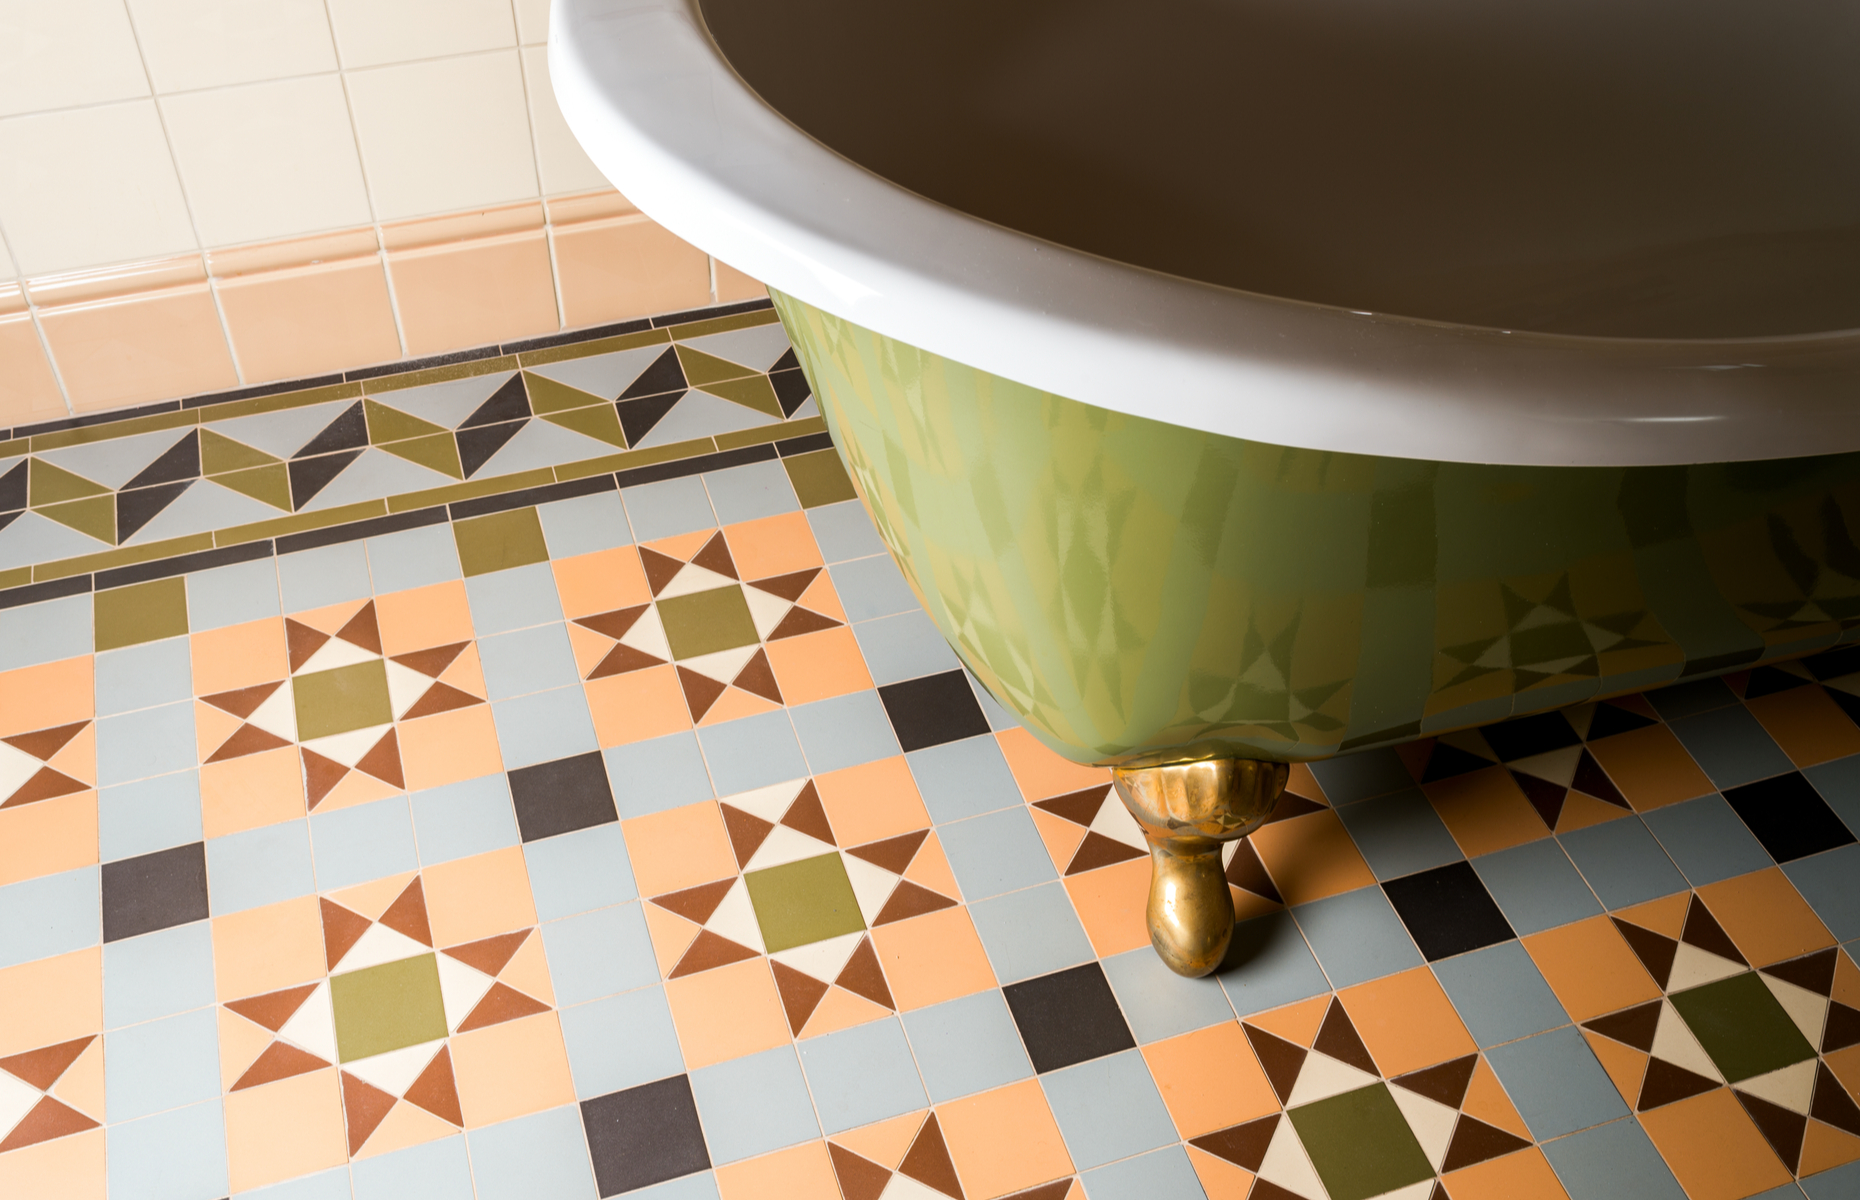 This bathroom wows with a patterned tiled floor, complete with an intricate border. Image: P A / Shutterstock